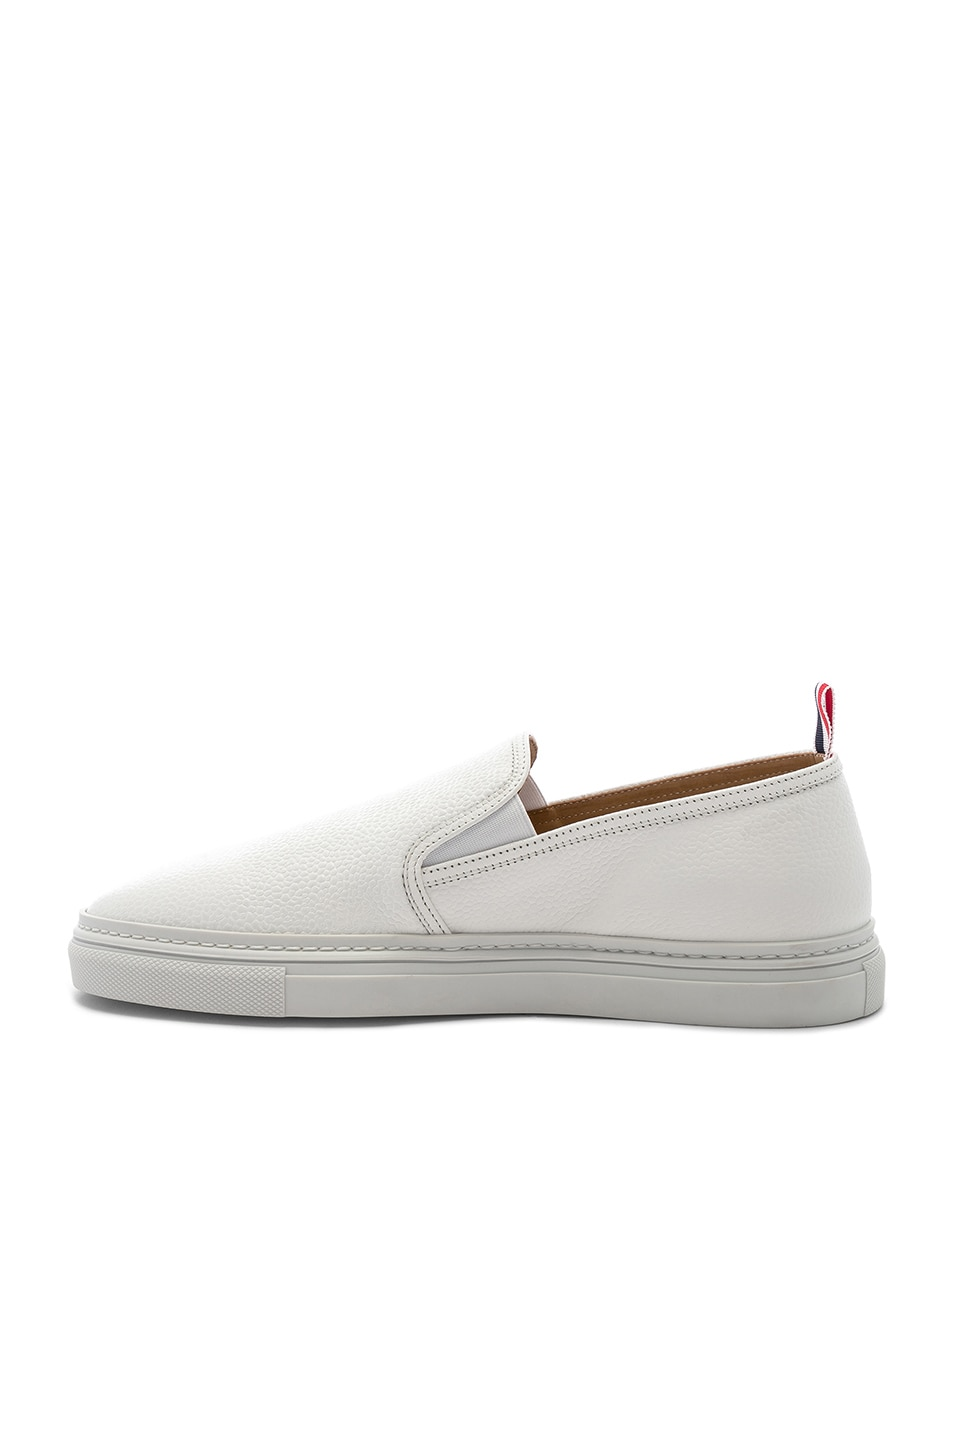 Image 5 of Thom Browne Slip On Trainer in White